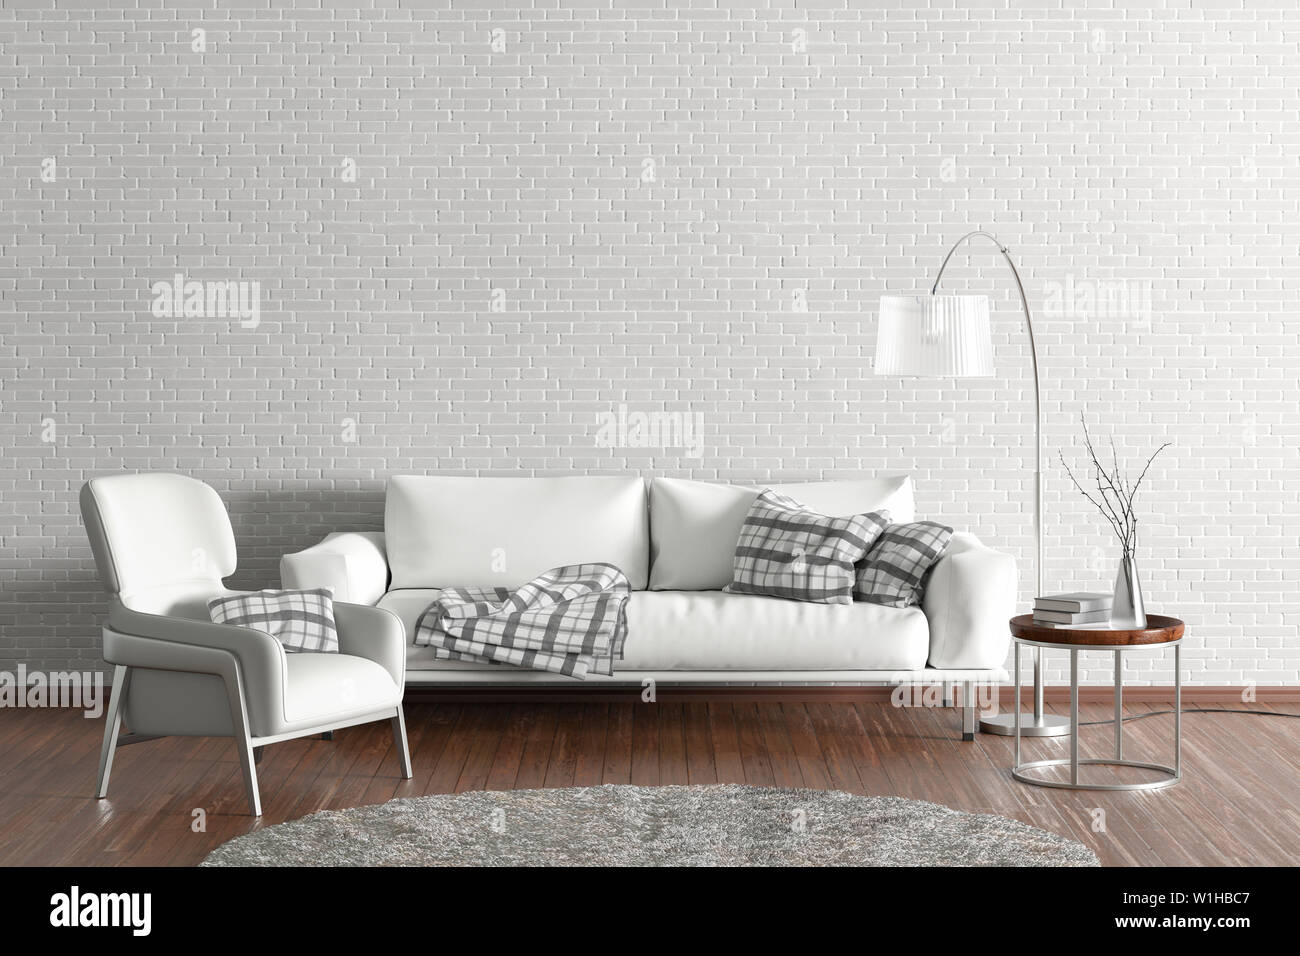 Interior Of Modern Living Room With White Wall And Wooden